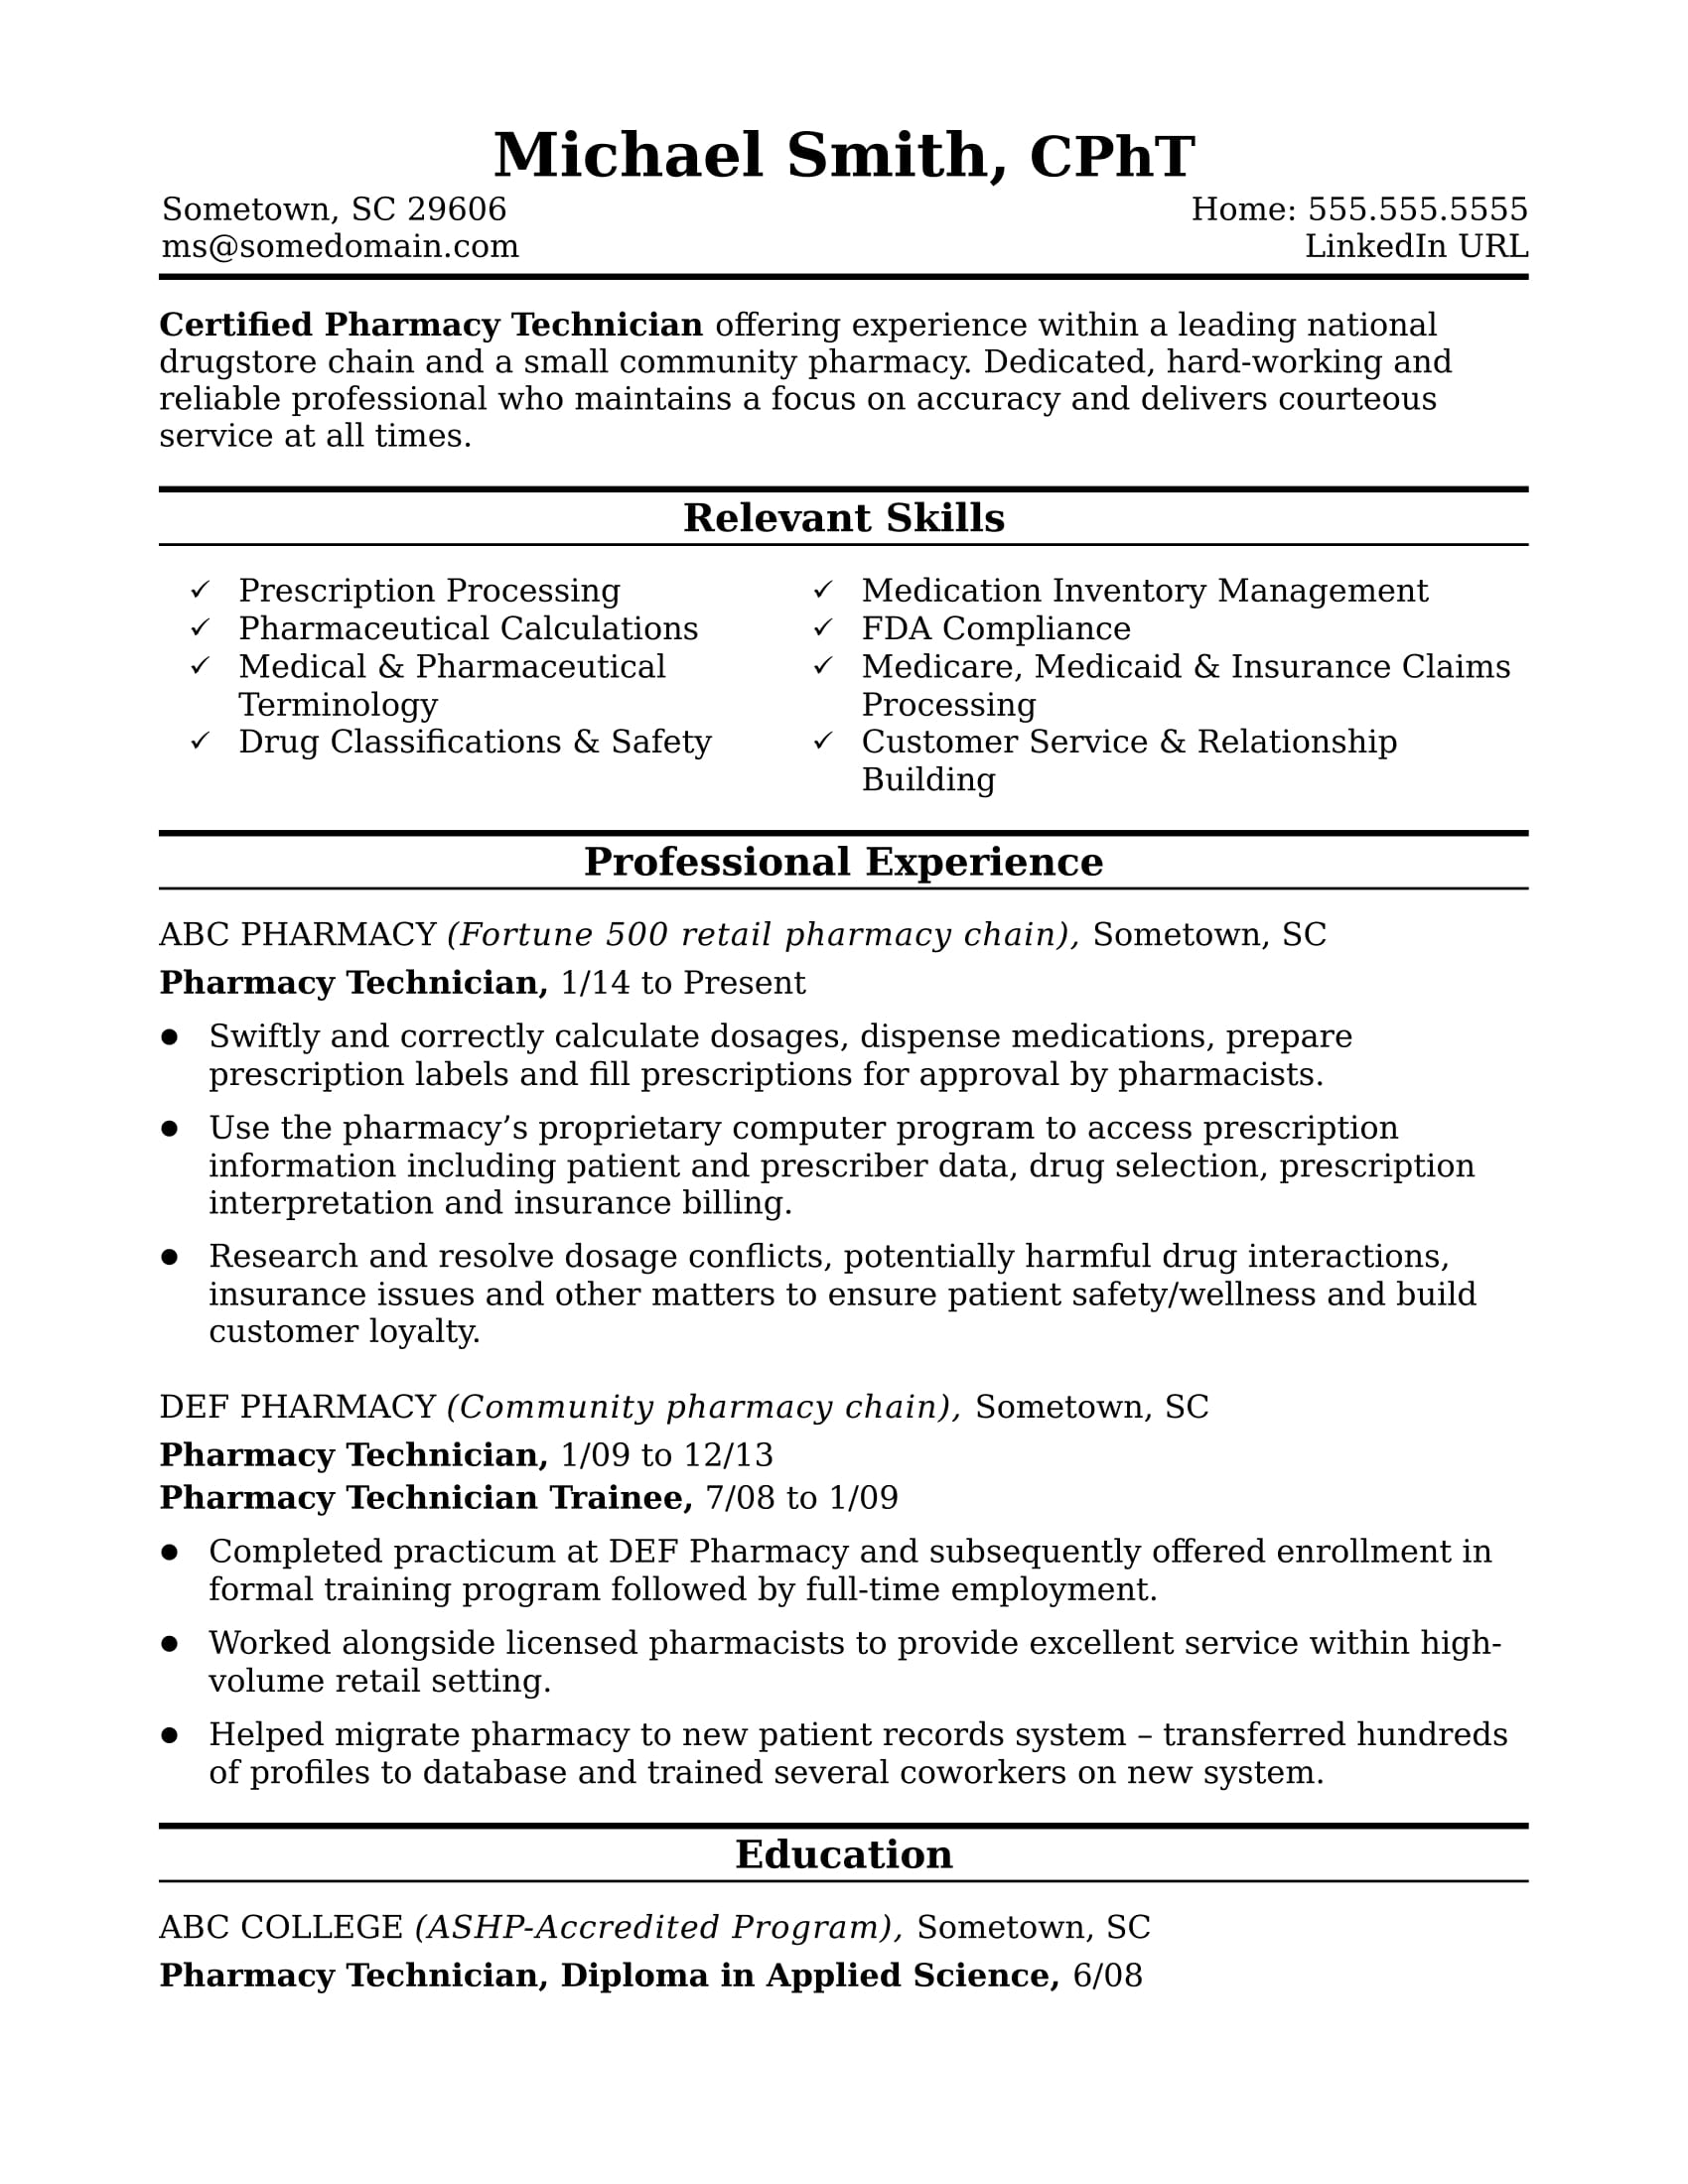 sample resume for a pharmacy technician - Data Center Technician Resume